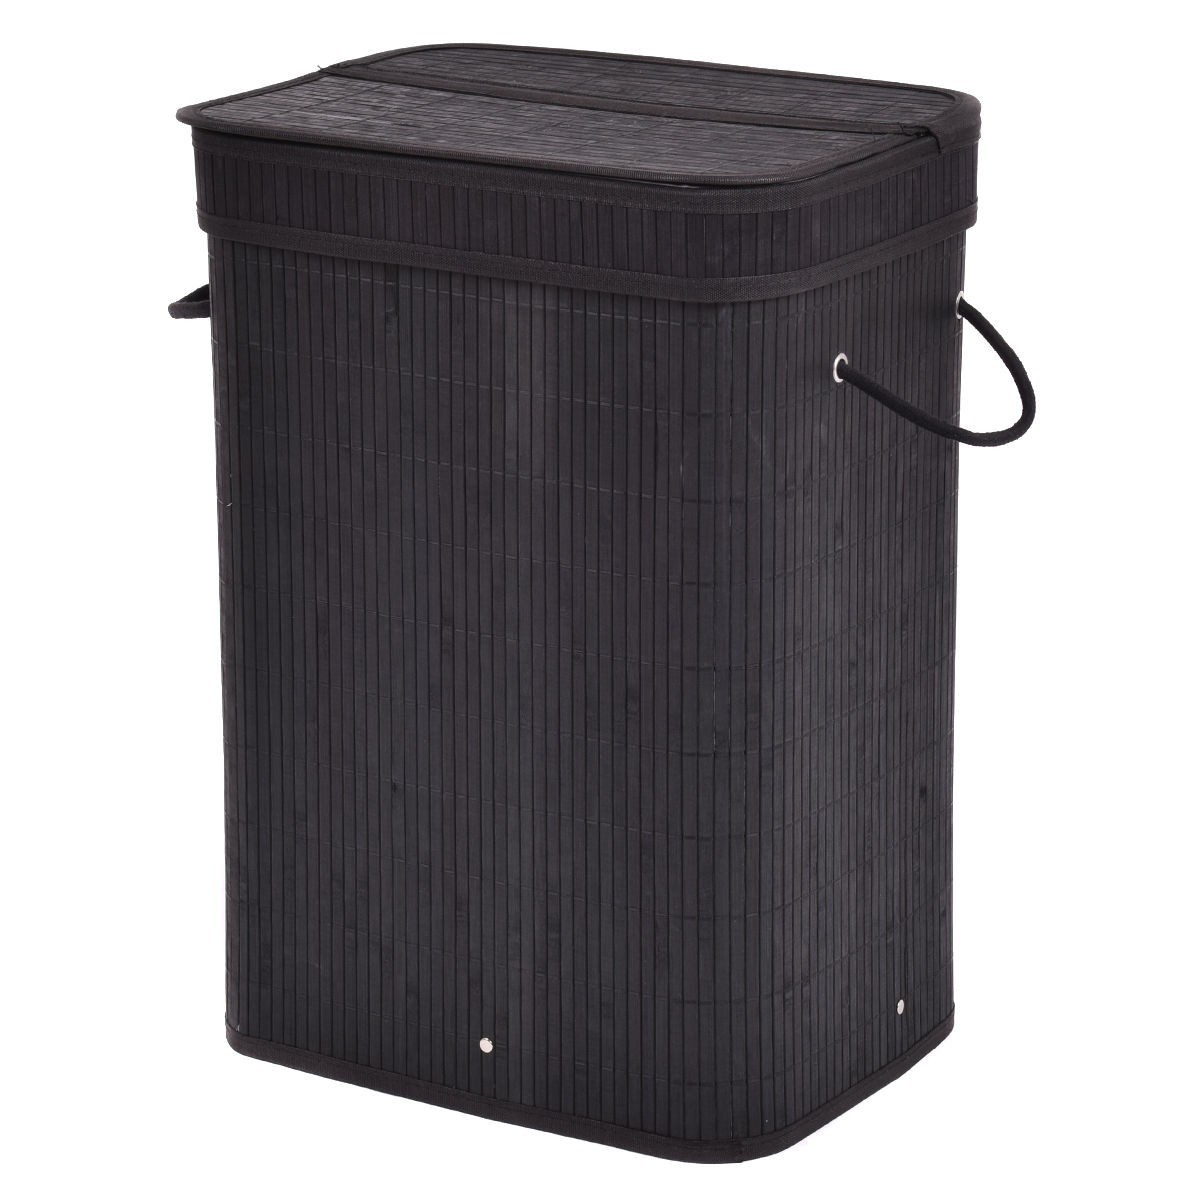 Wood Clothes Hamper With Lid Rectangular Bamboo Laundry Hamper Basket With Lid